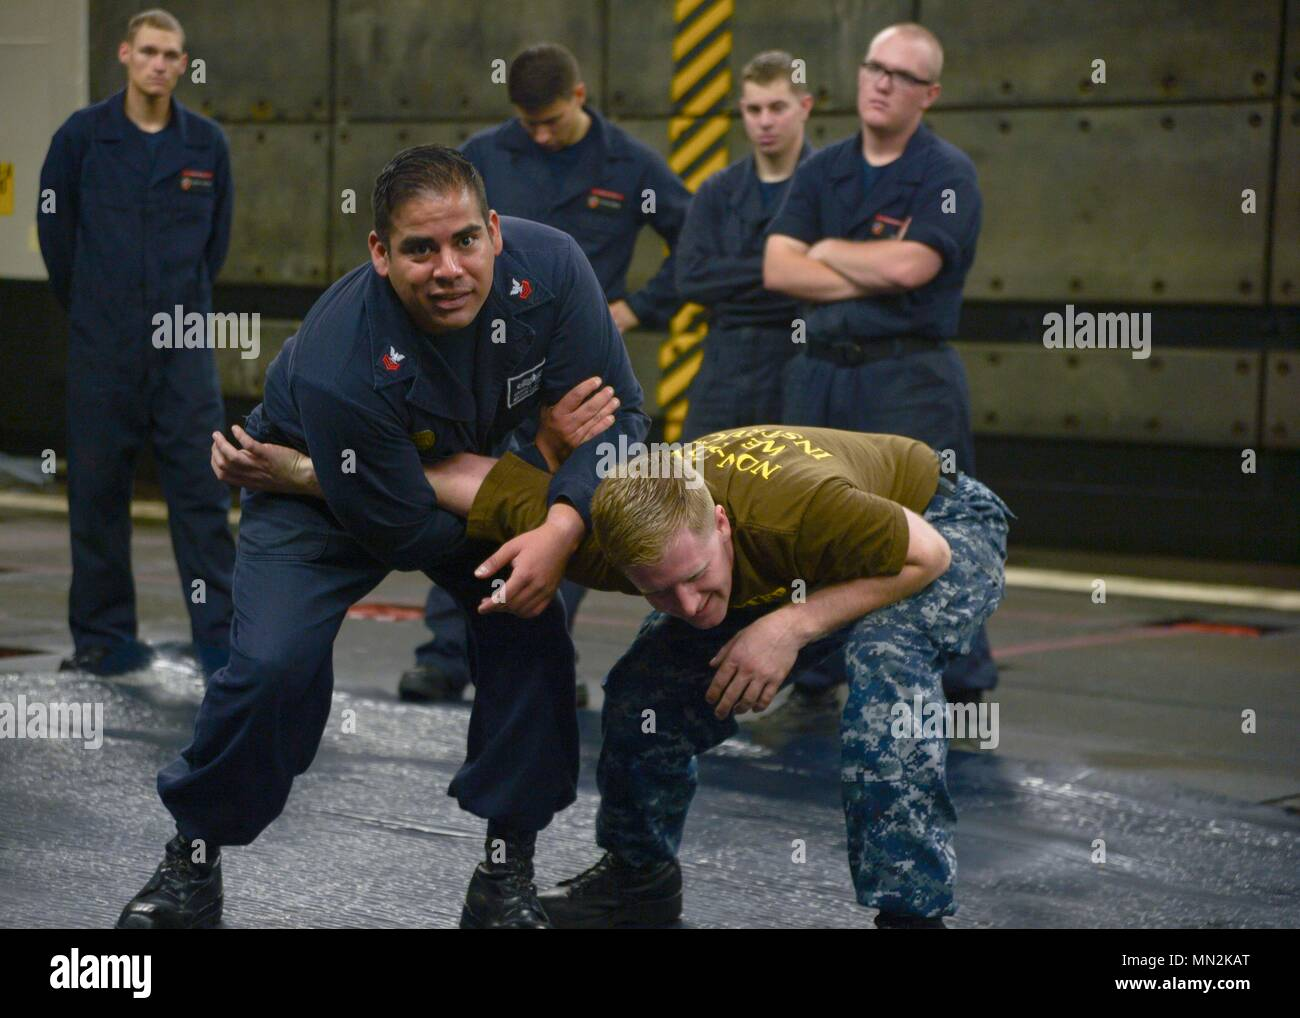 170816-N-NB142-0985   PACIFIC OCEAN (Aug. 16, 2017) Master-at-Arms 1st Class Gabriel Suarez and Legalman 1st Class John Detty demonstrate a mechanical advantage control hold (MACH) takedown during a Security Reaction Force Basic course in the well deck of the Wasp-class amphibious assault ship USS Essex (LHD 2). Essex is underway conducting sea trials and flight deck certifications off the coast of Southern California. (U.S. Navy photo by Mass Communication Specialist 3rd Class Chandler Harrell/Released) - Stock Image